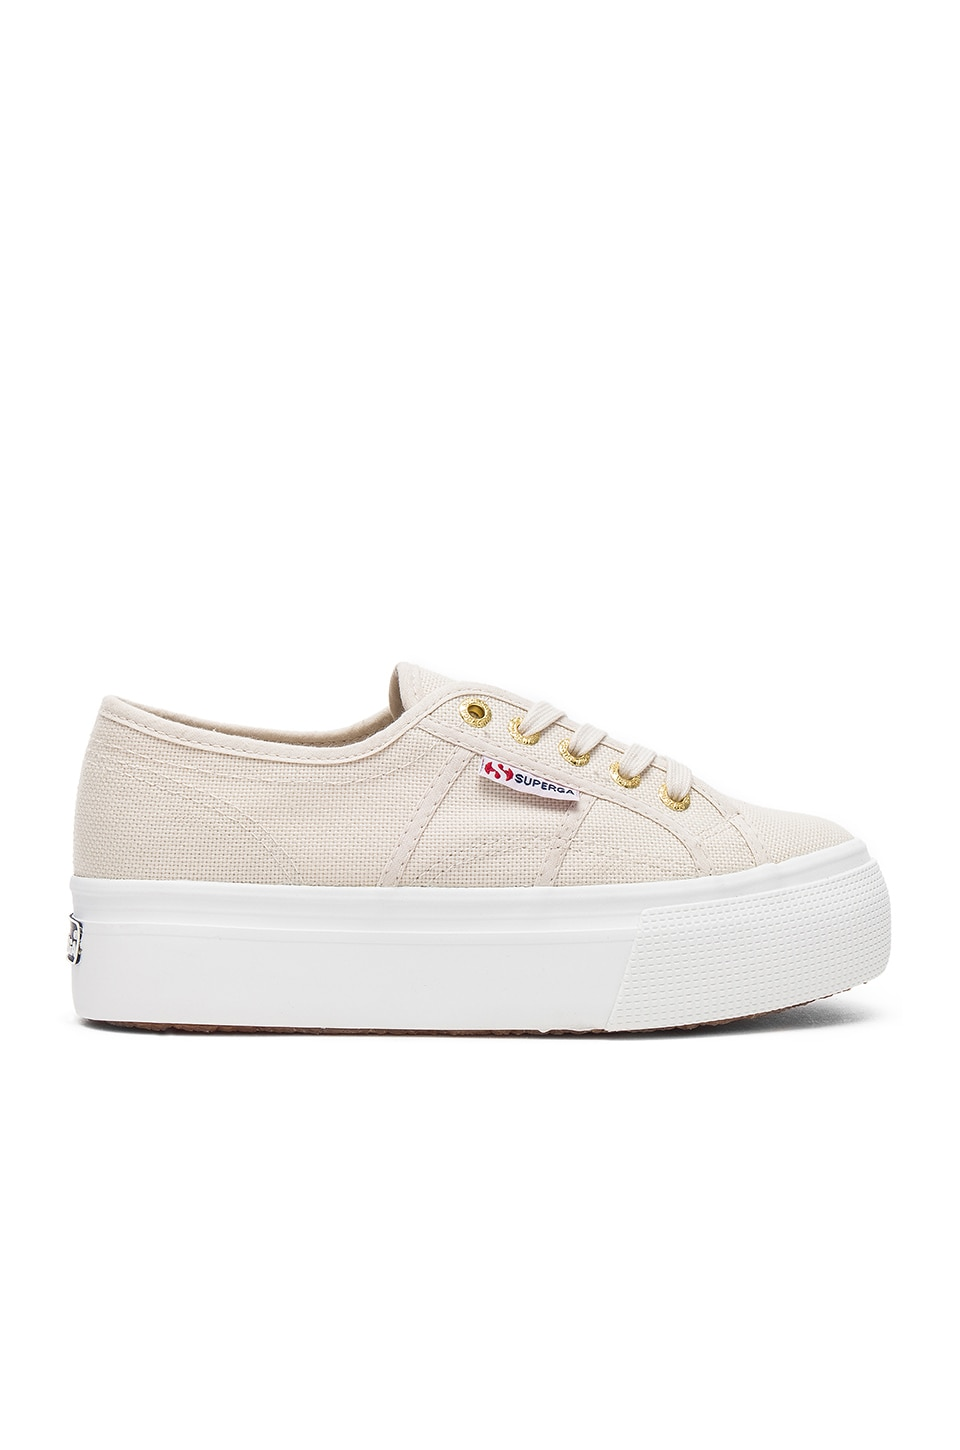 2790 Sneaker in Beige. - size 10 (also in 7.5,8,8.5,9,9.5) Superga